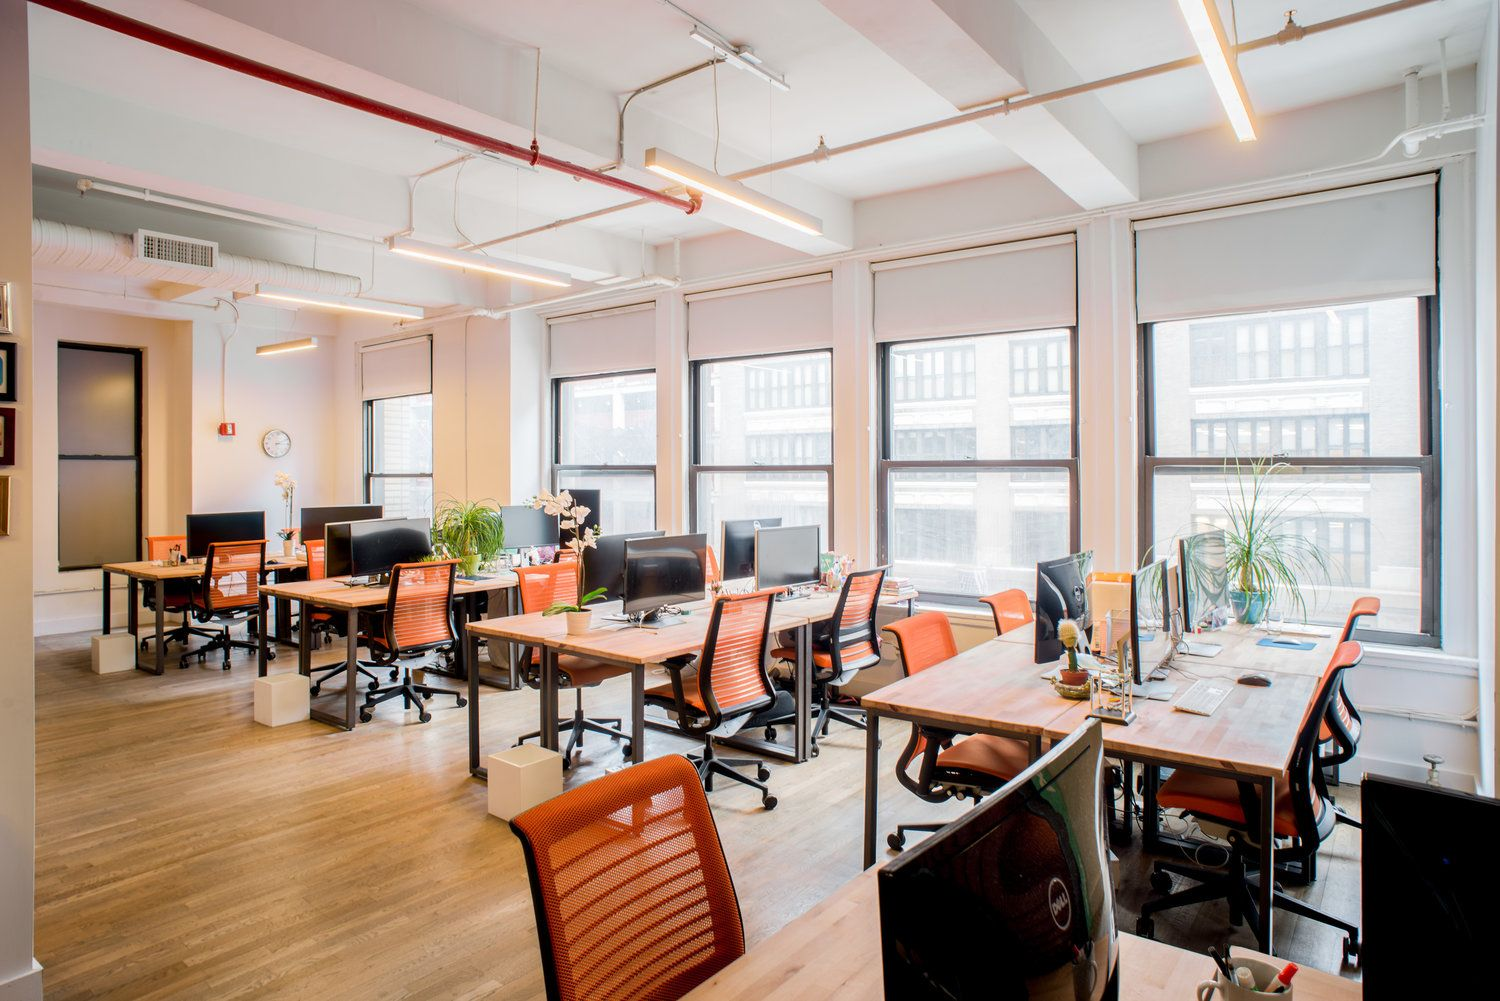 Scalable Enterprise Office Space Bond Collective Shared Office Space And Coworking For Modern Businesses Shared Office Space Shared Office Coworking